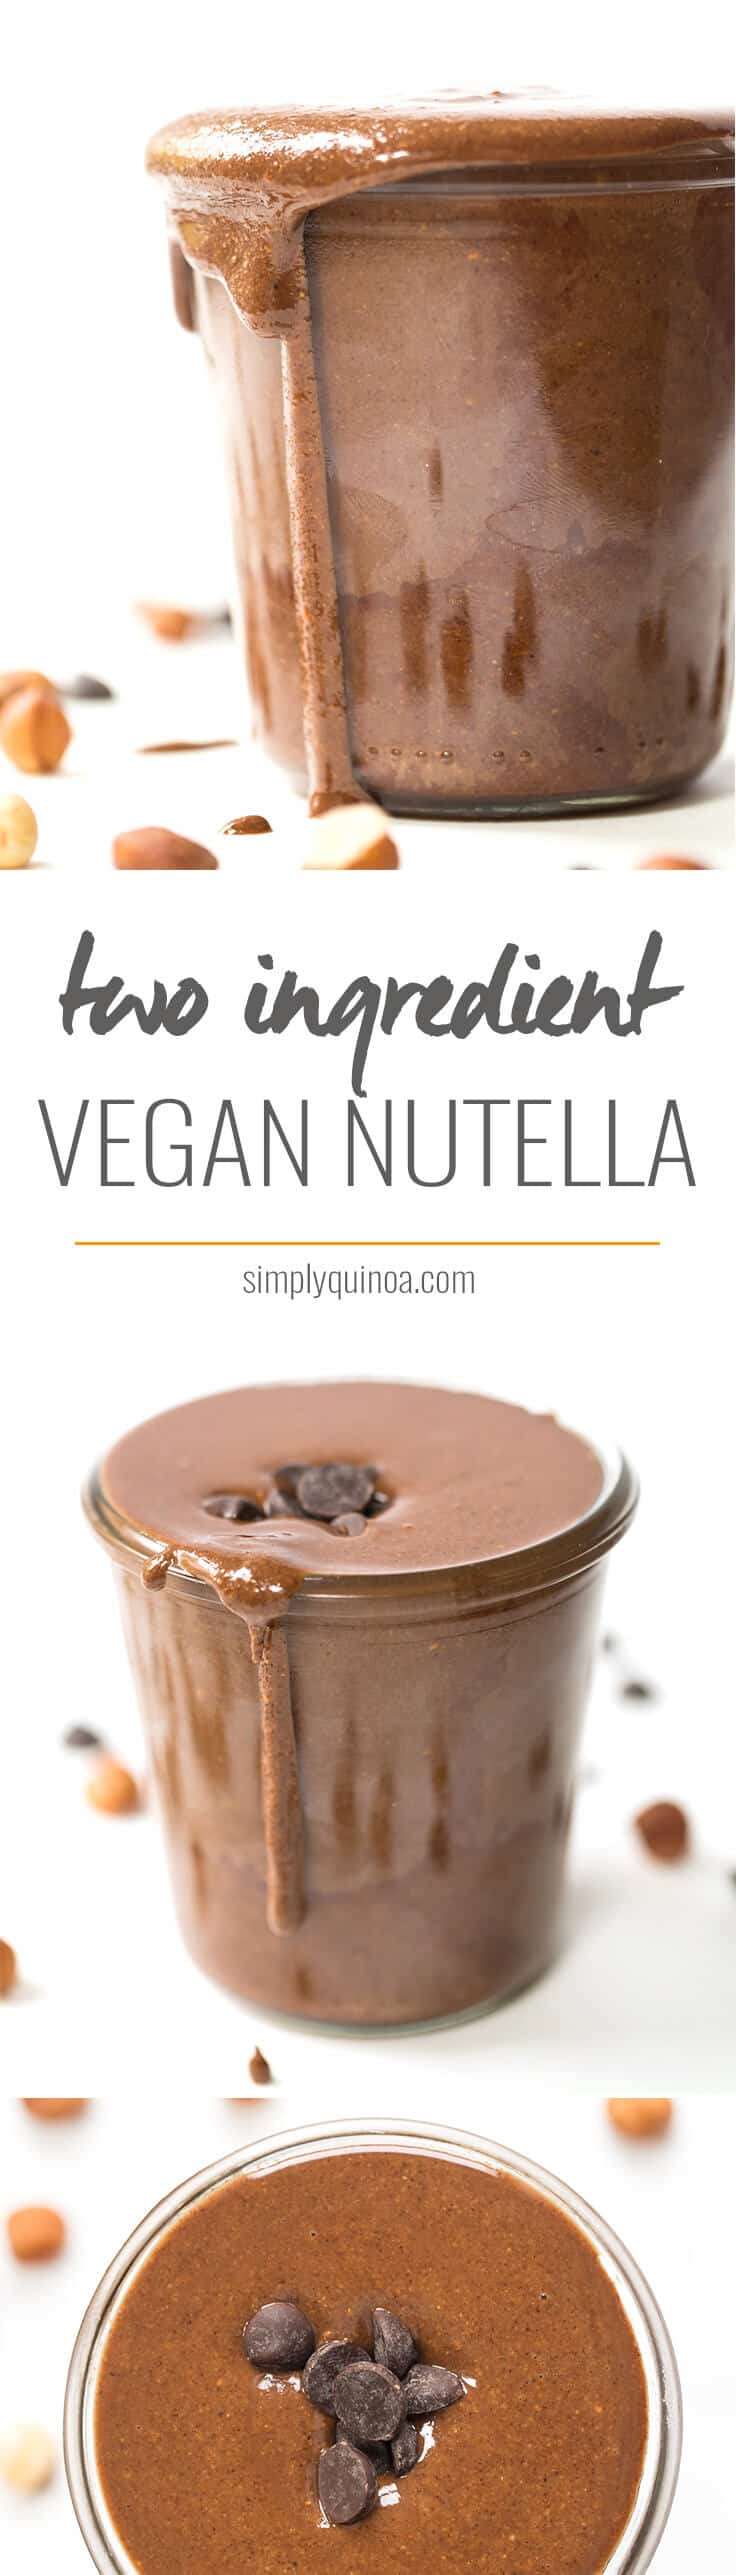 HEALTHY NUTELLA with only two ingredients! It's easy to make, doesn't have any of the junk AND it's vegan!